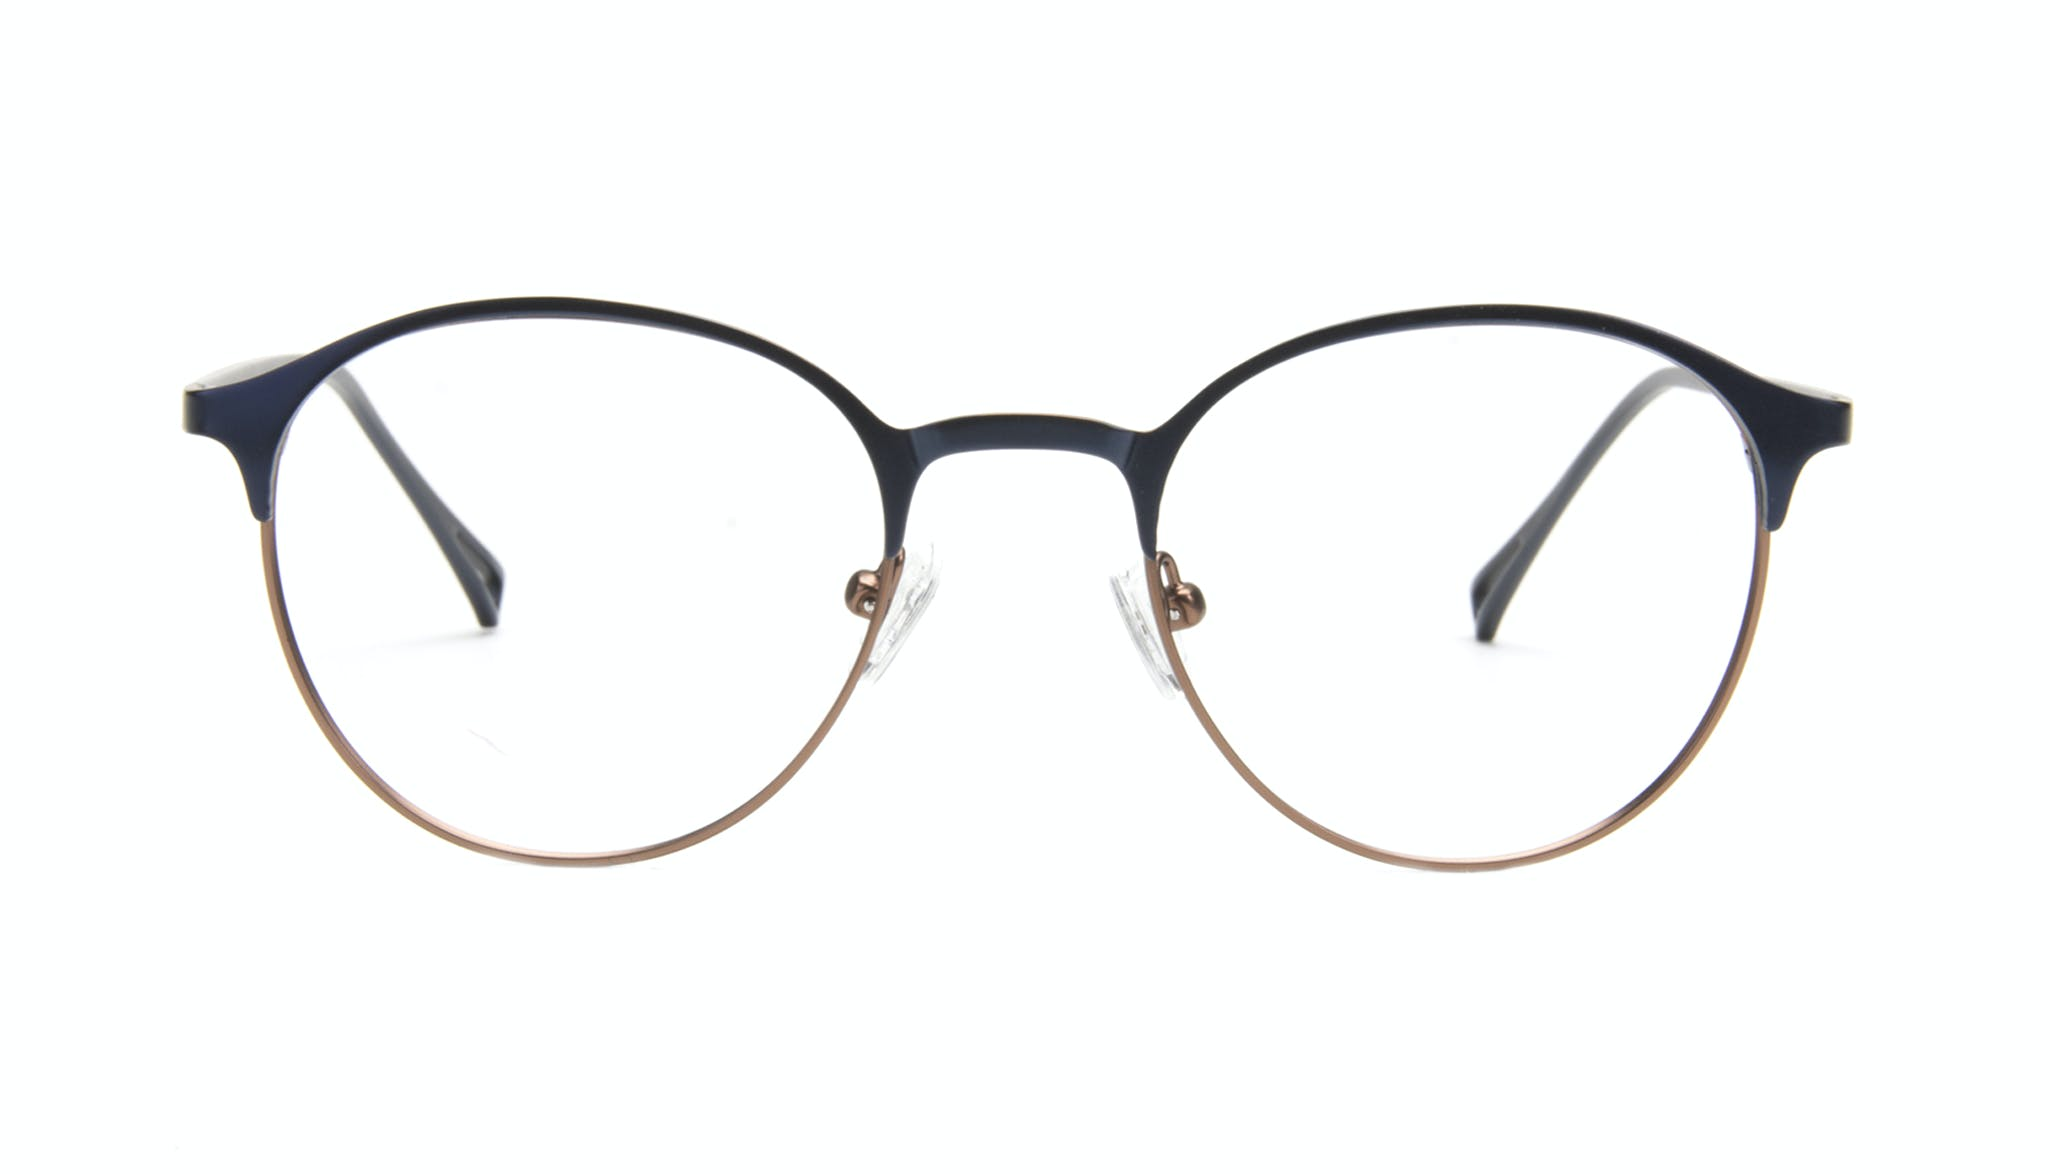 Affordable Fashion Glasses Round Eyeglasses Women Bay Marine